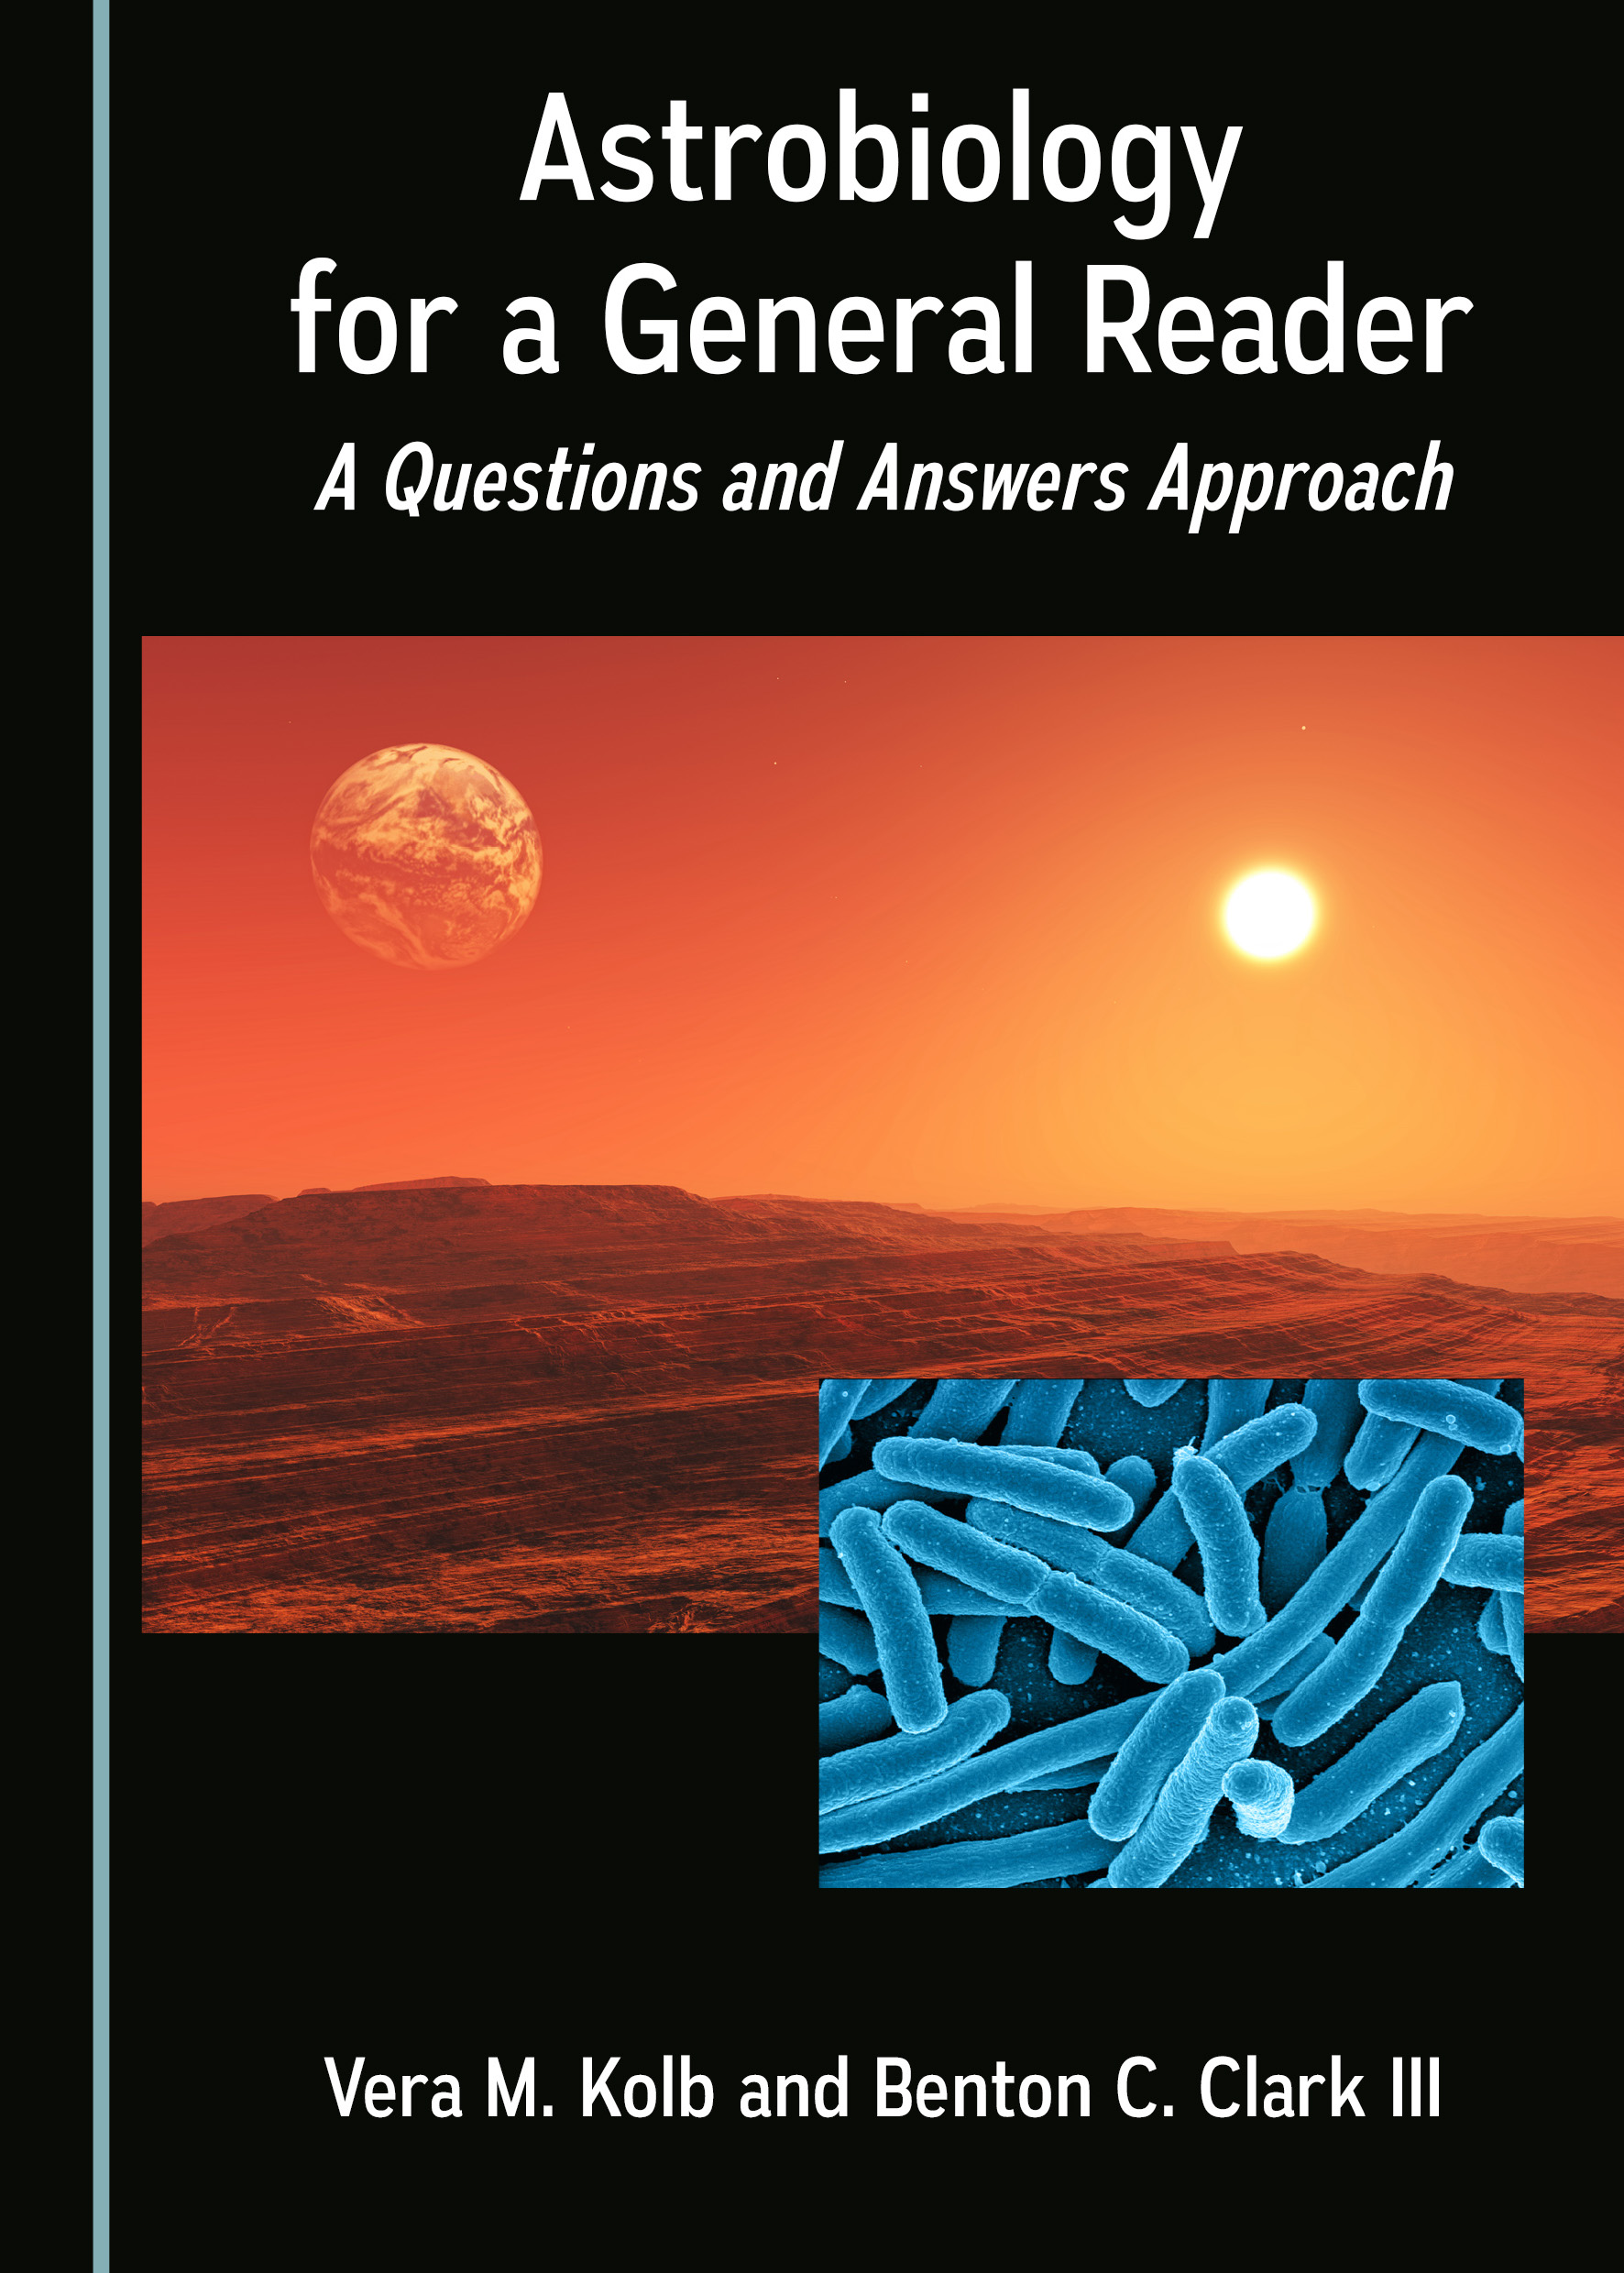 Astrobiology for a General Reader: A Questions and Answers Approach